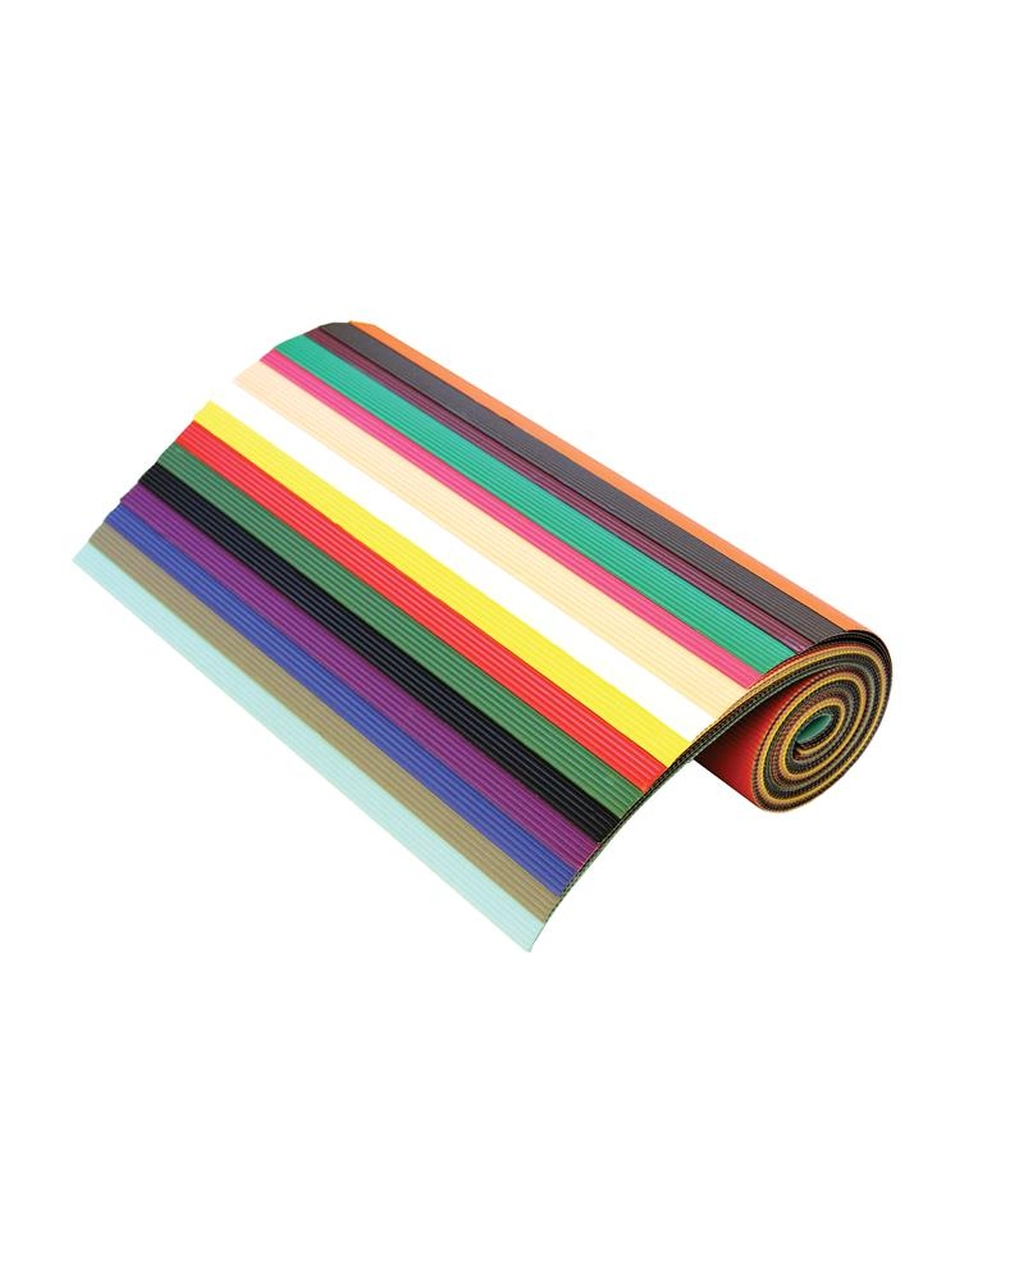 Corrugated Board Rolls, Assorted Colours 500x700mm